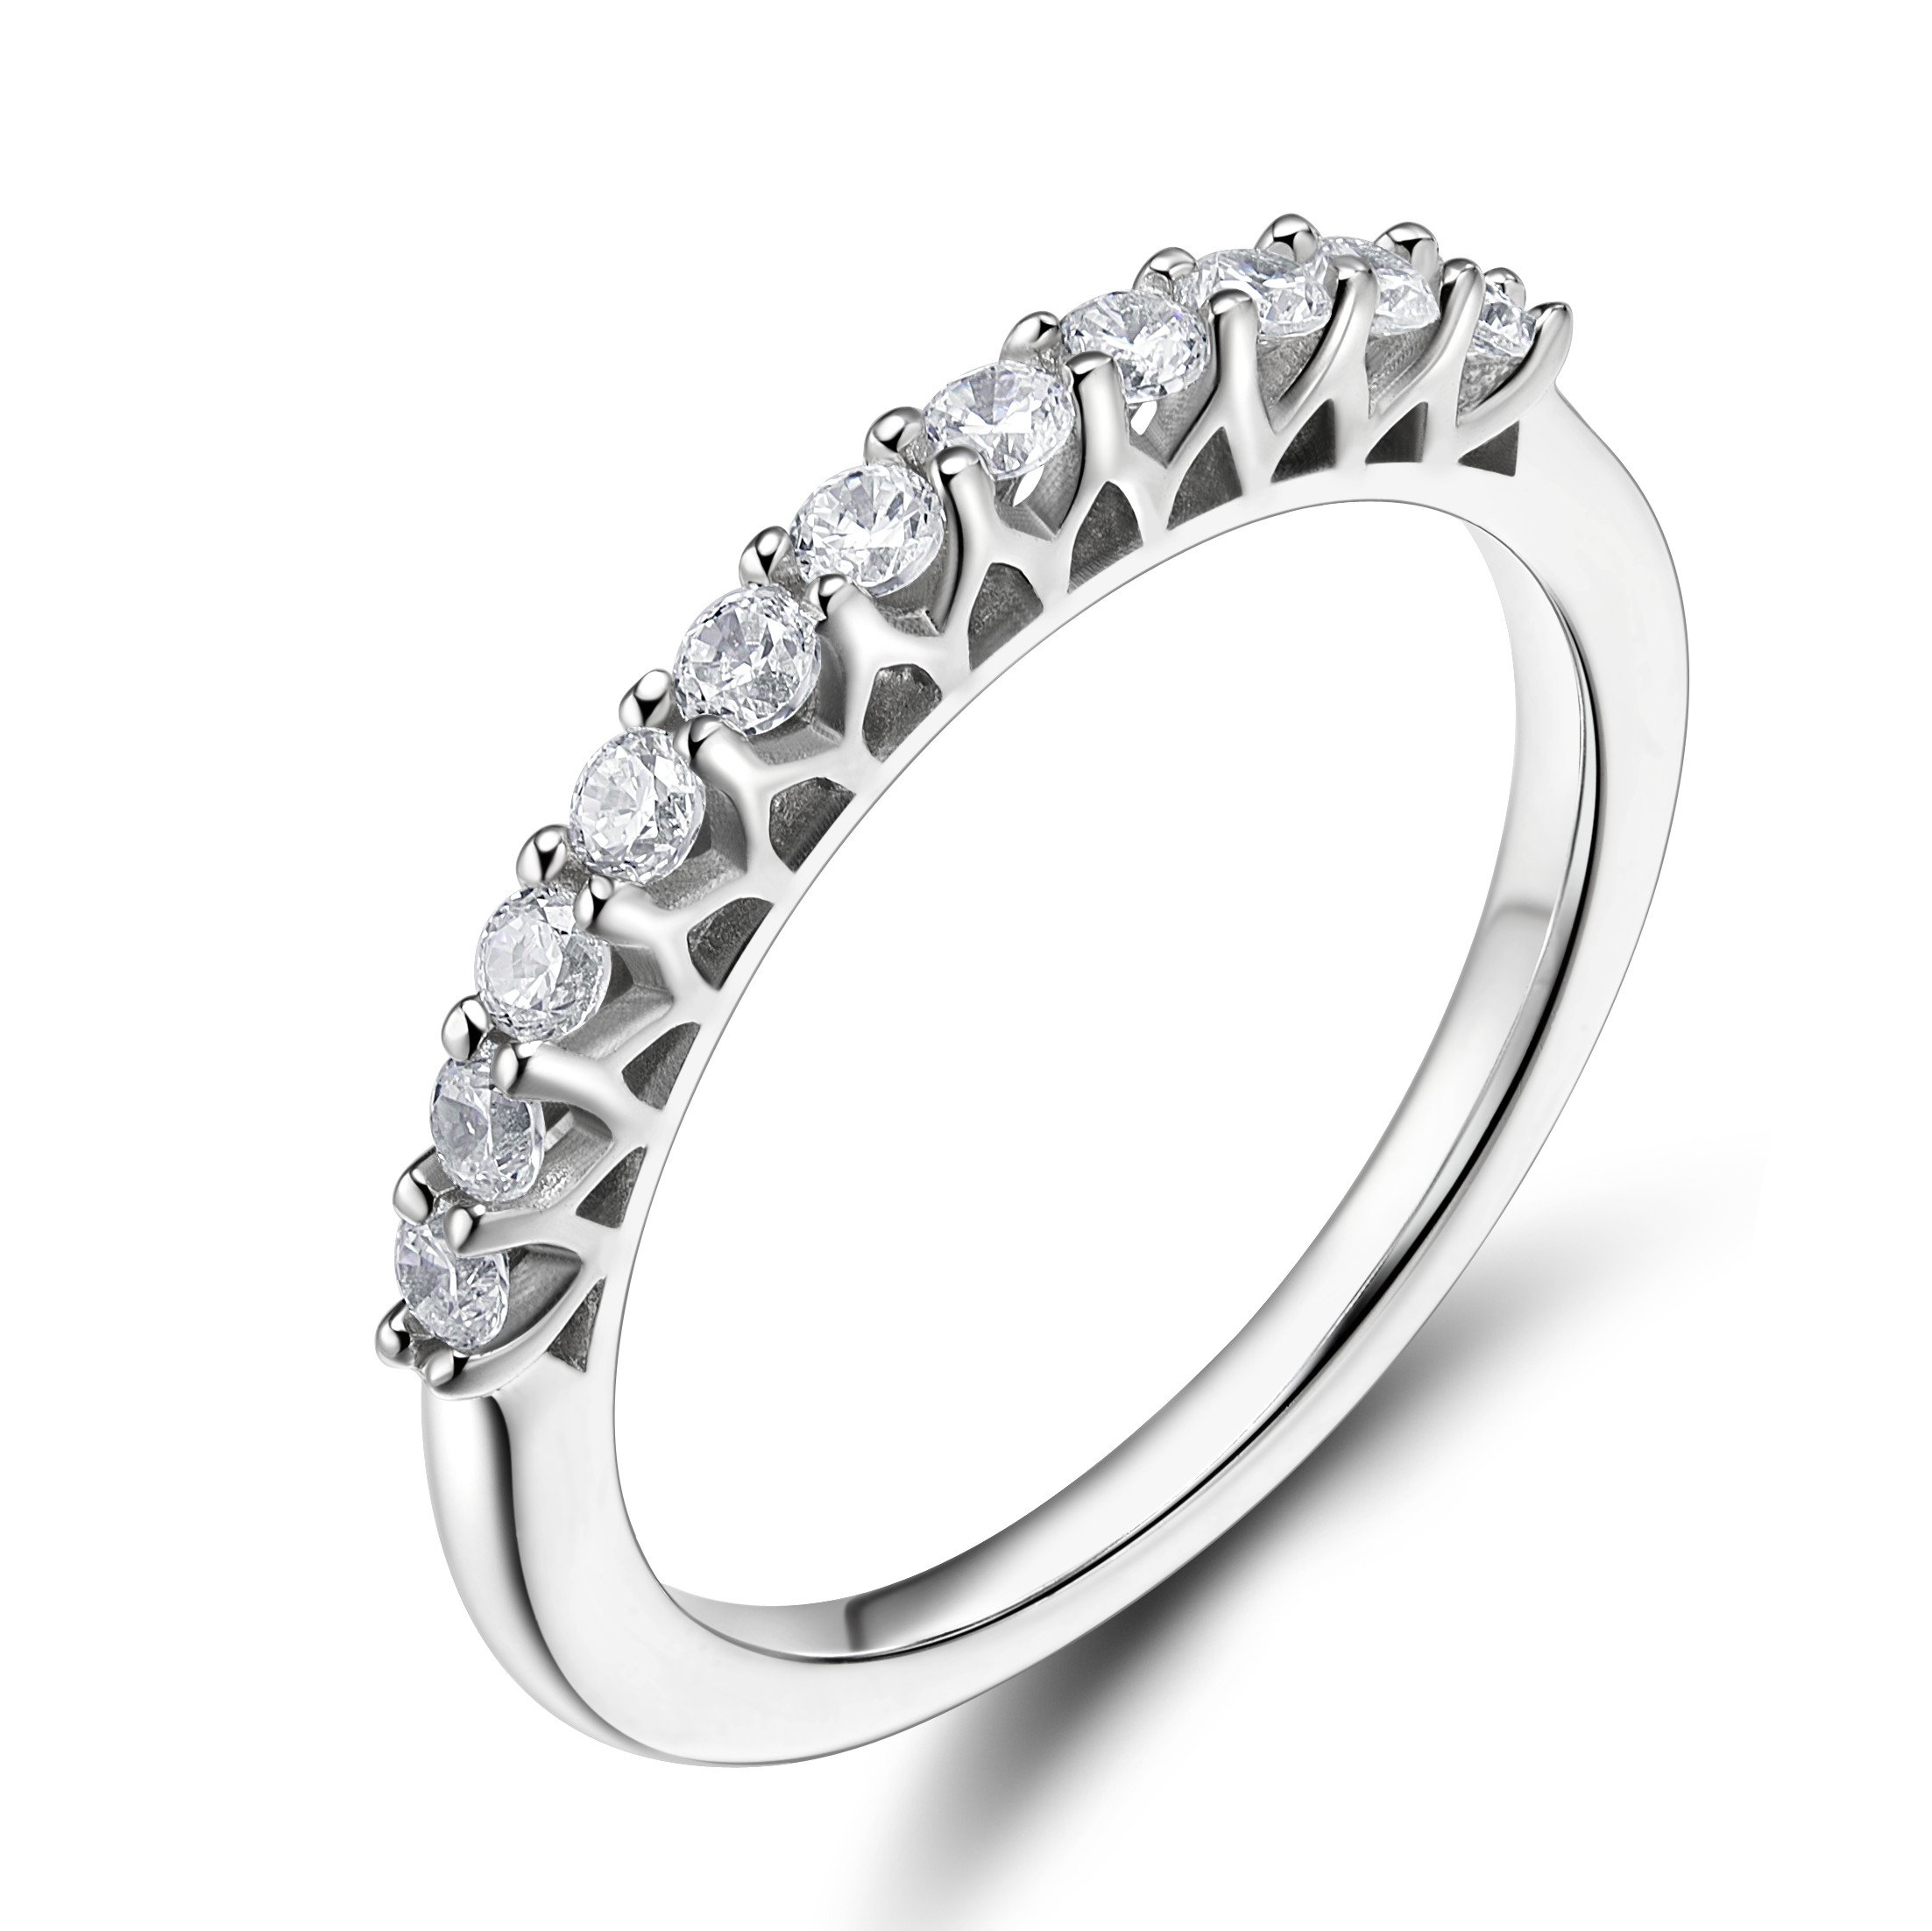 EAMTI 925 Sterling Silver Cubic Zirconia Half Eternity Ring Engagement Wedding Band (6)